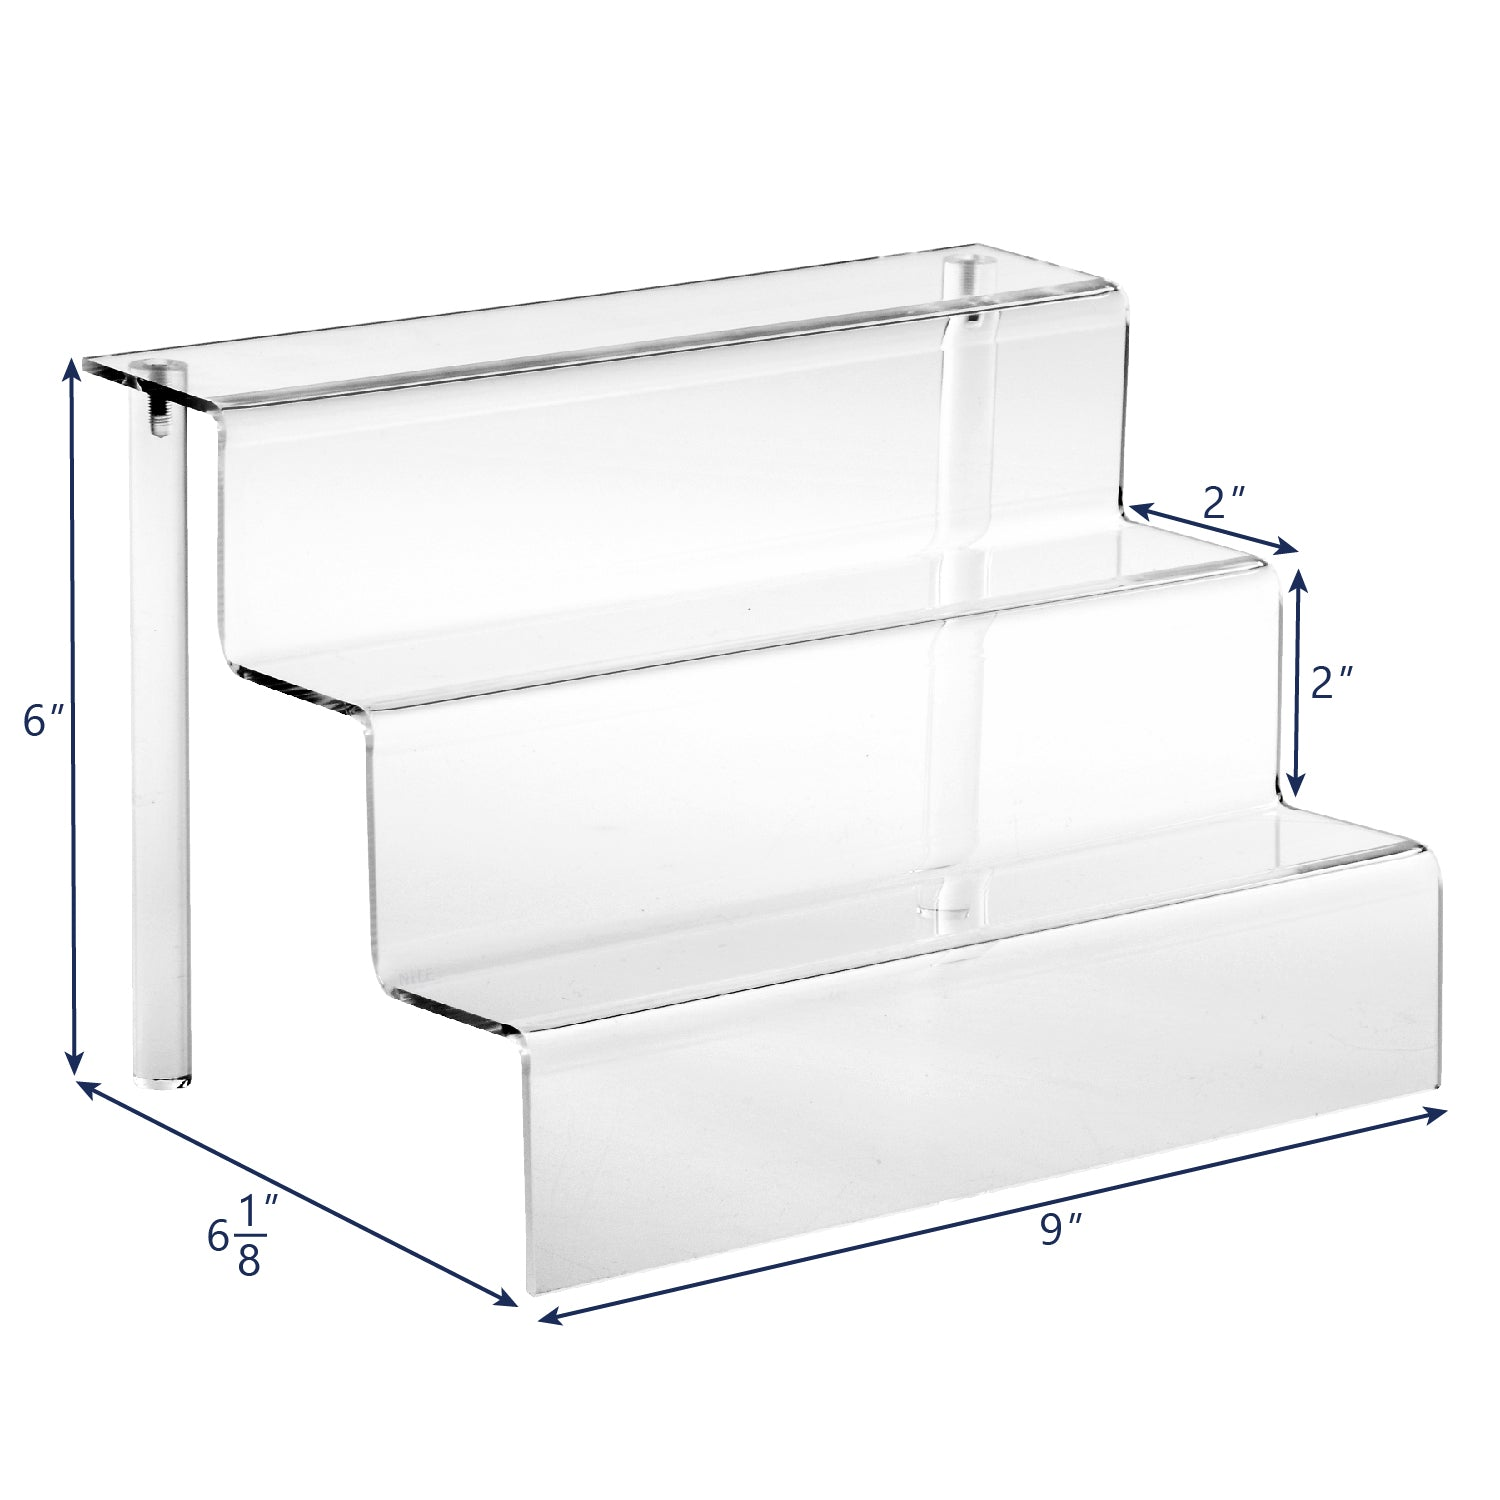 #1250 Acrylic Stairs Eyewear Display Stand, 3 Frames